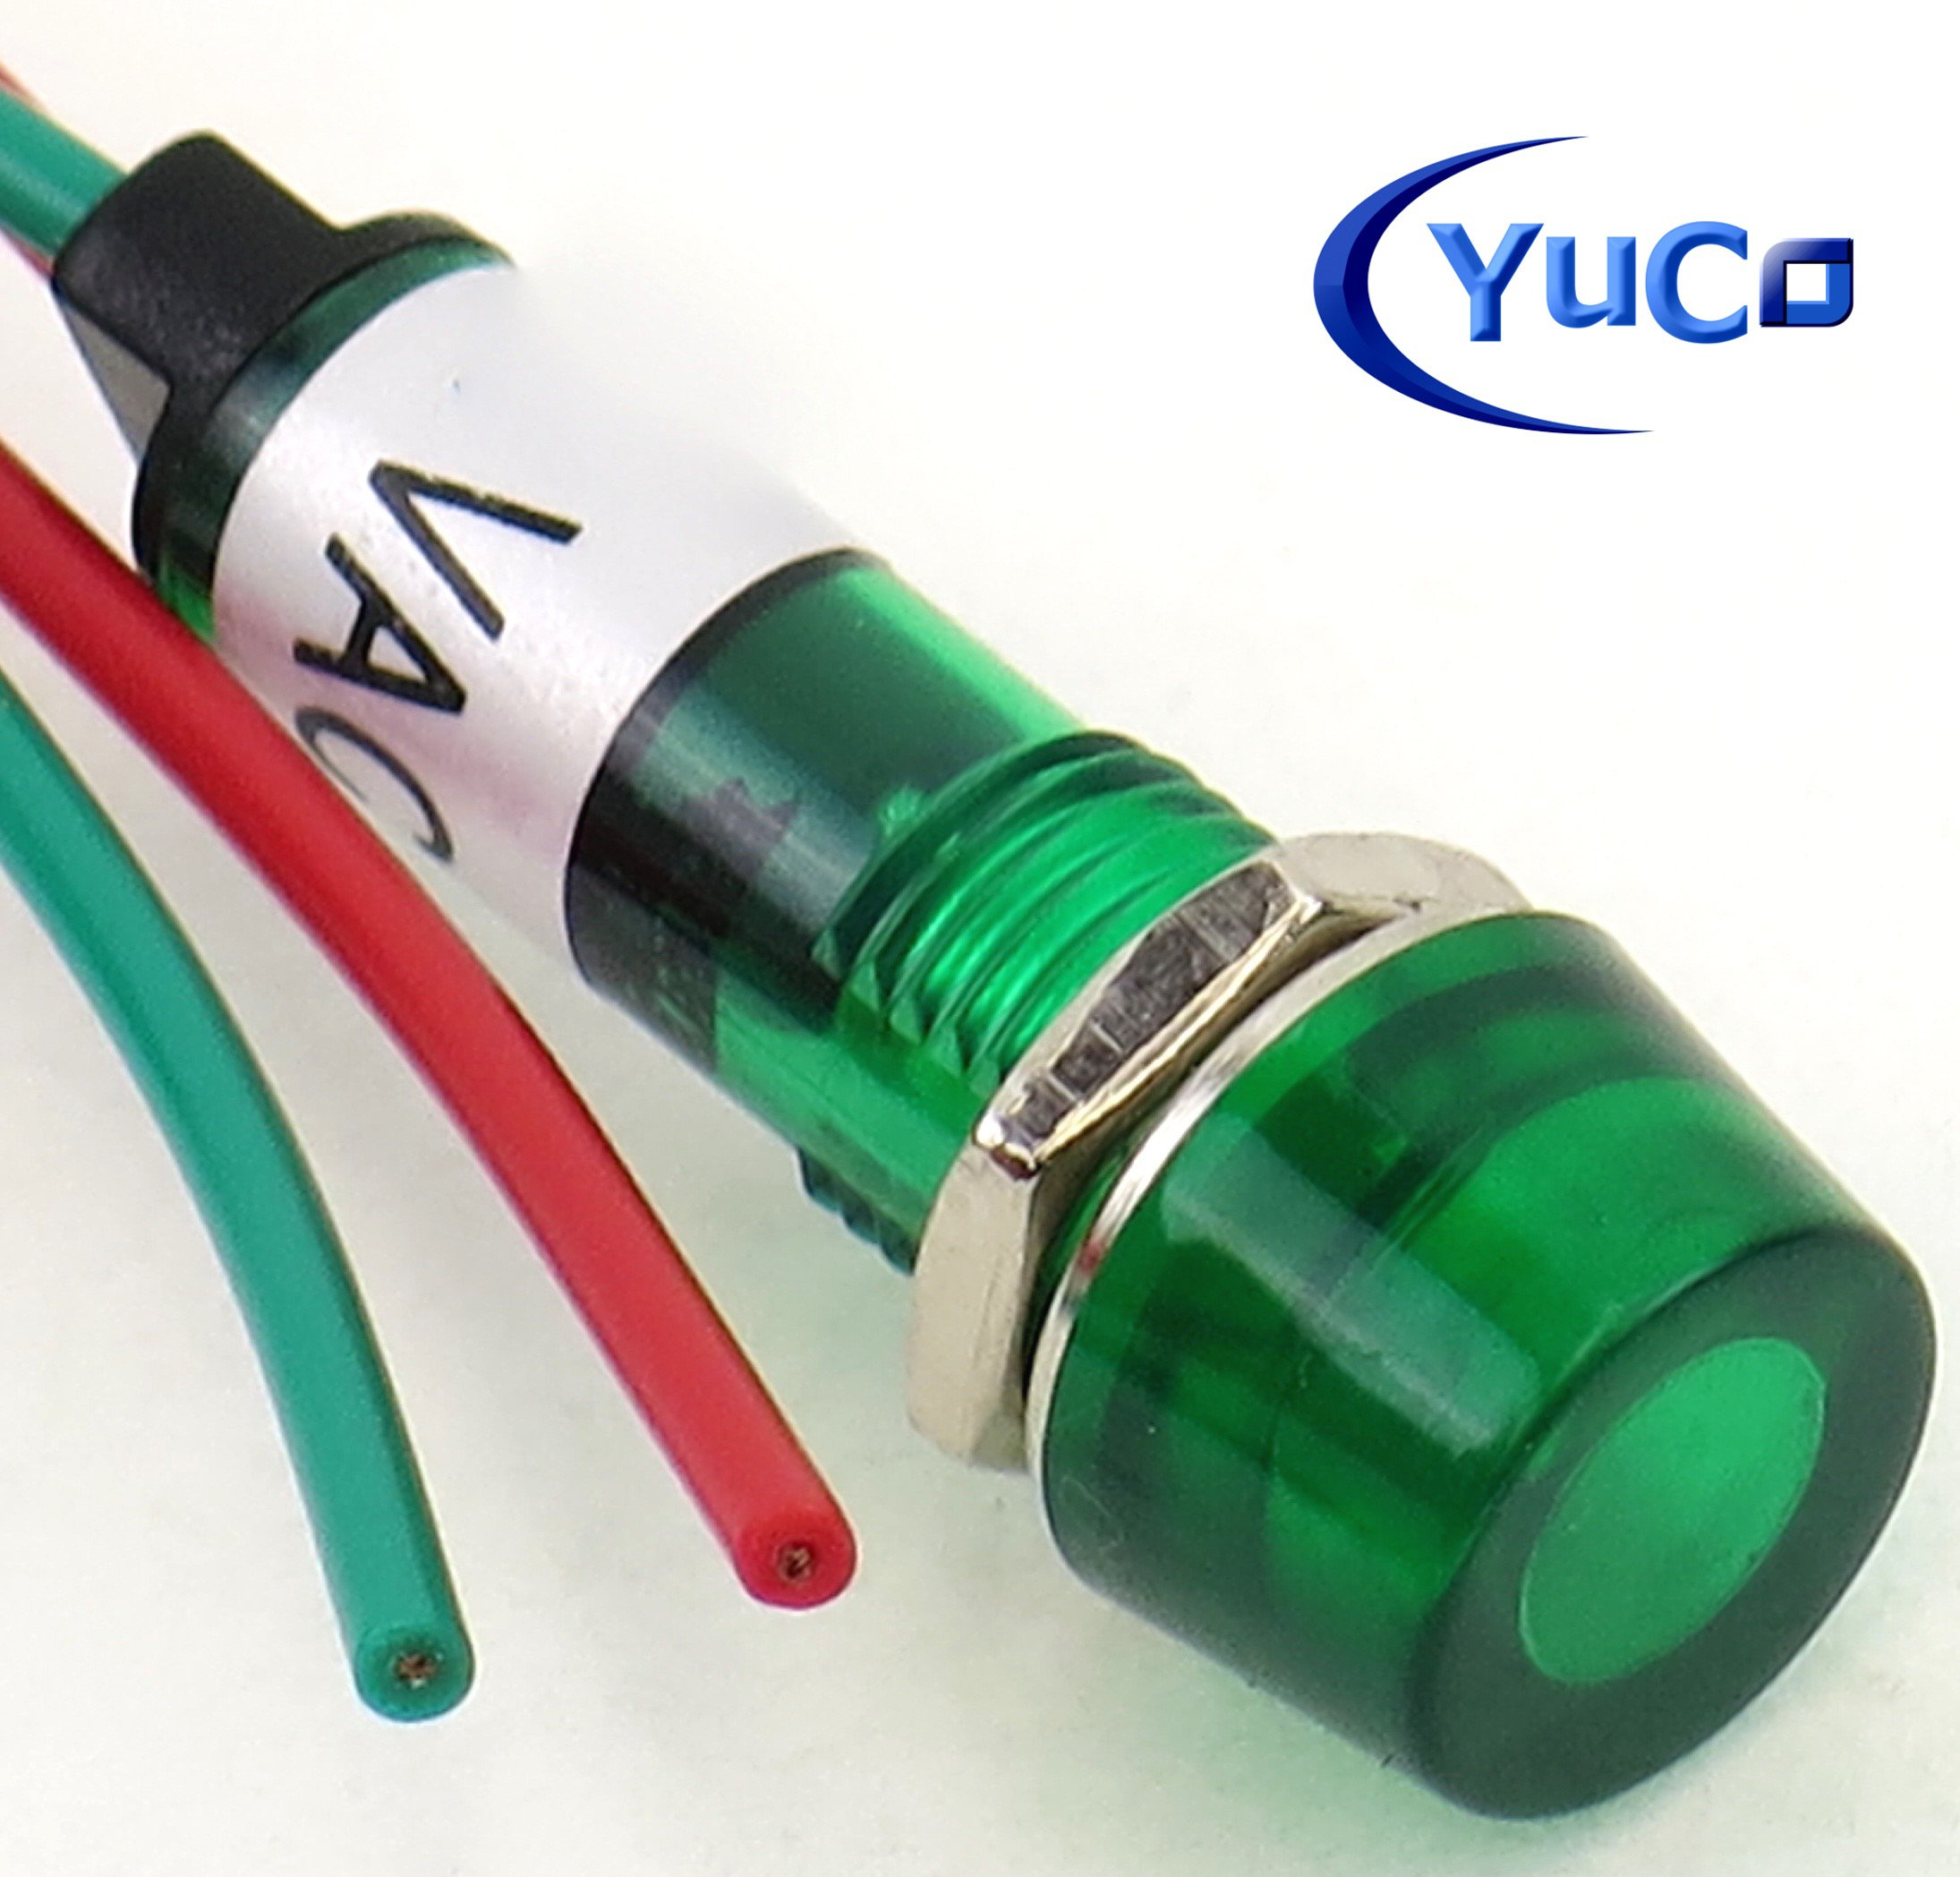 Yuco YC-9WRT-1G-24-10 Mini Indicator Light 9mm Cylindrical Cap Wire-Base Ring + Nut AC/DC Pack of 10 (Green, 24V) by Yuco